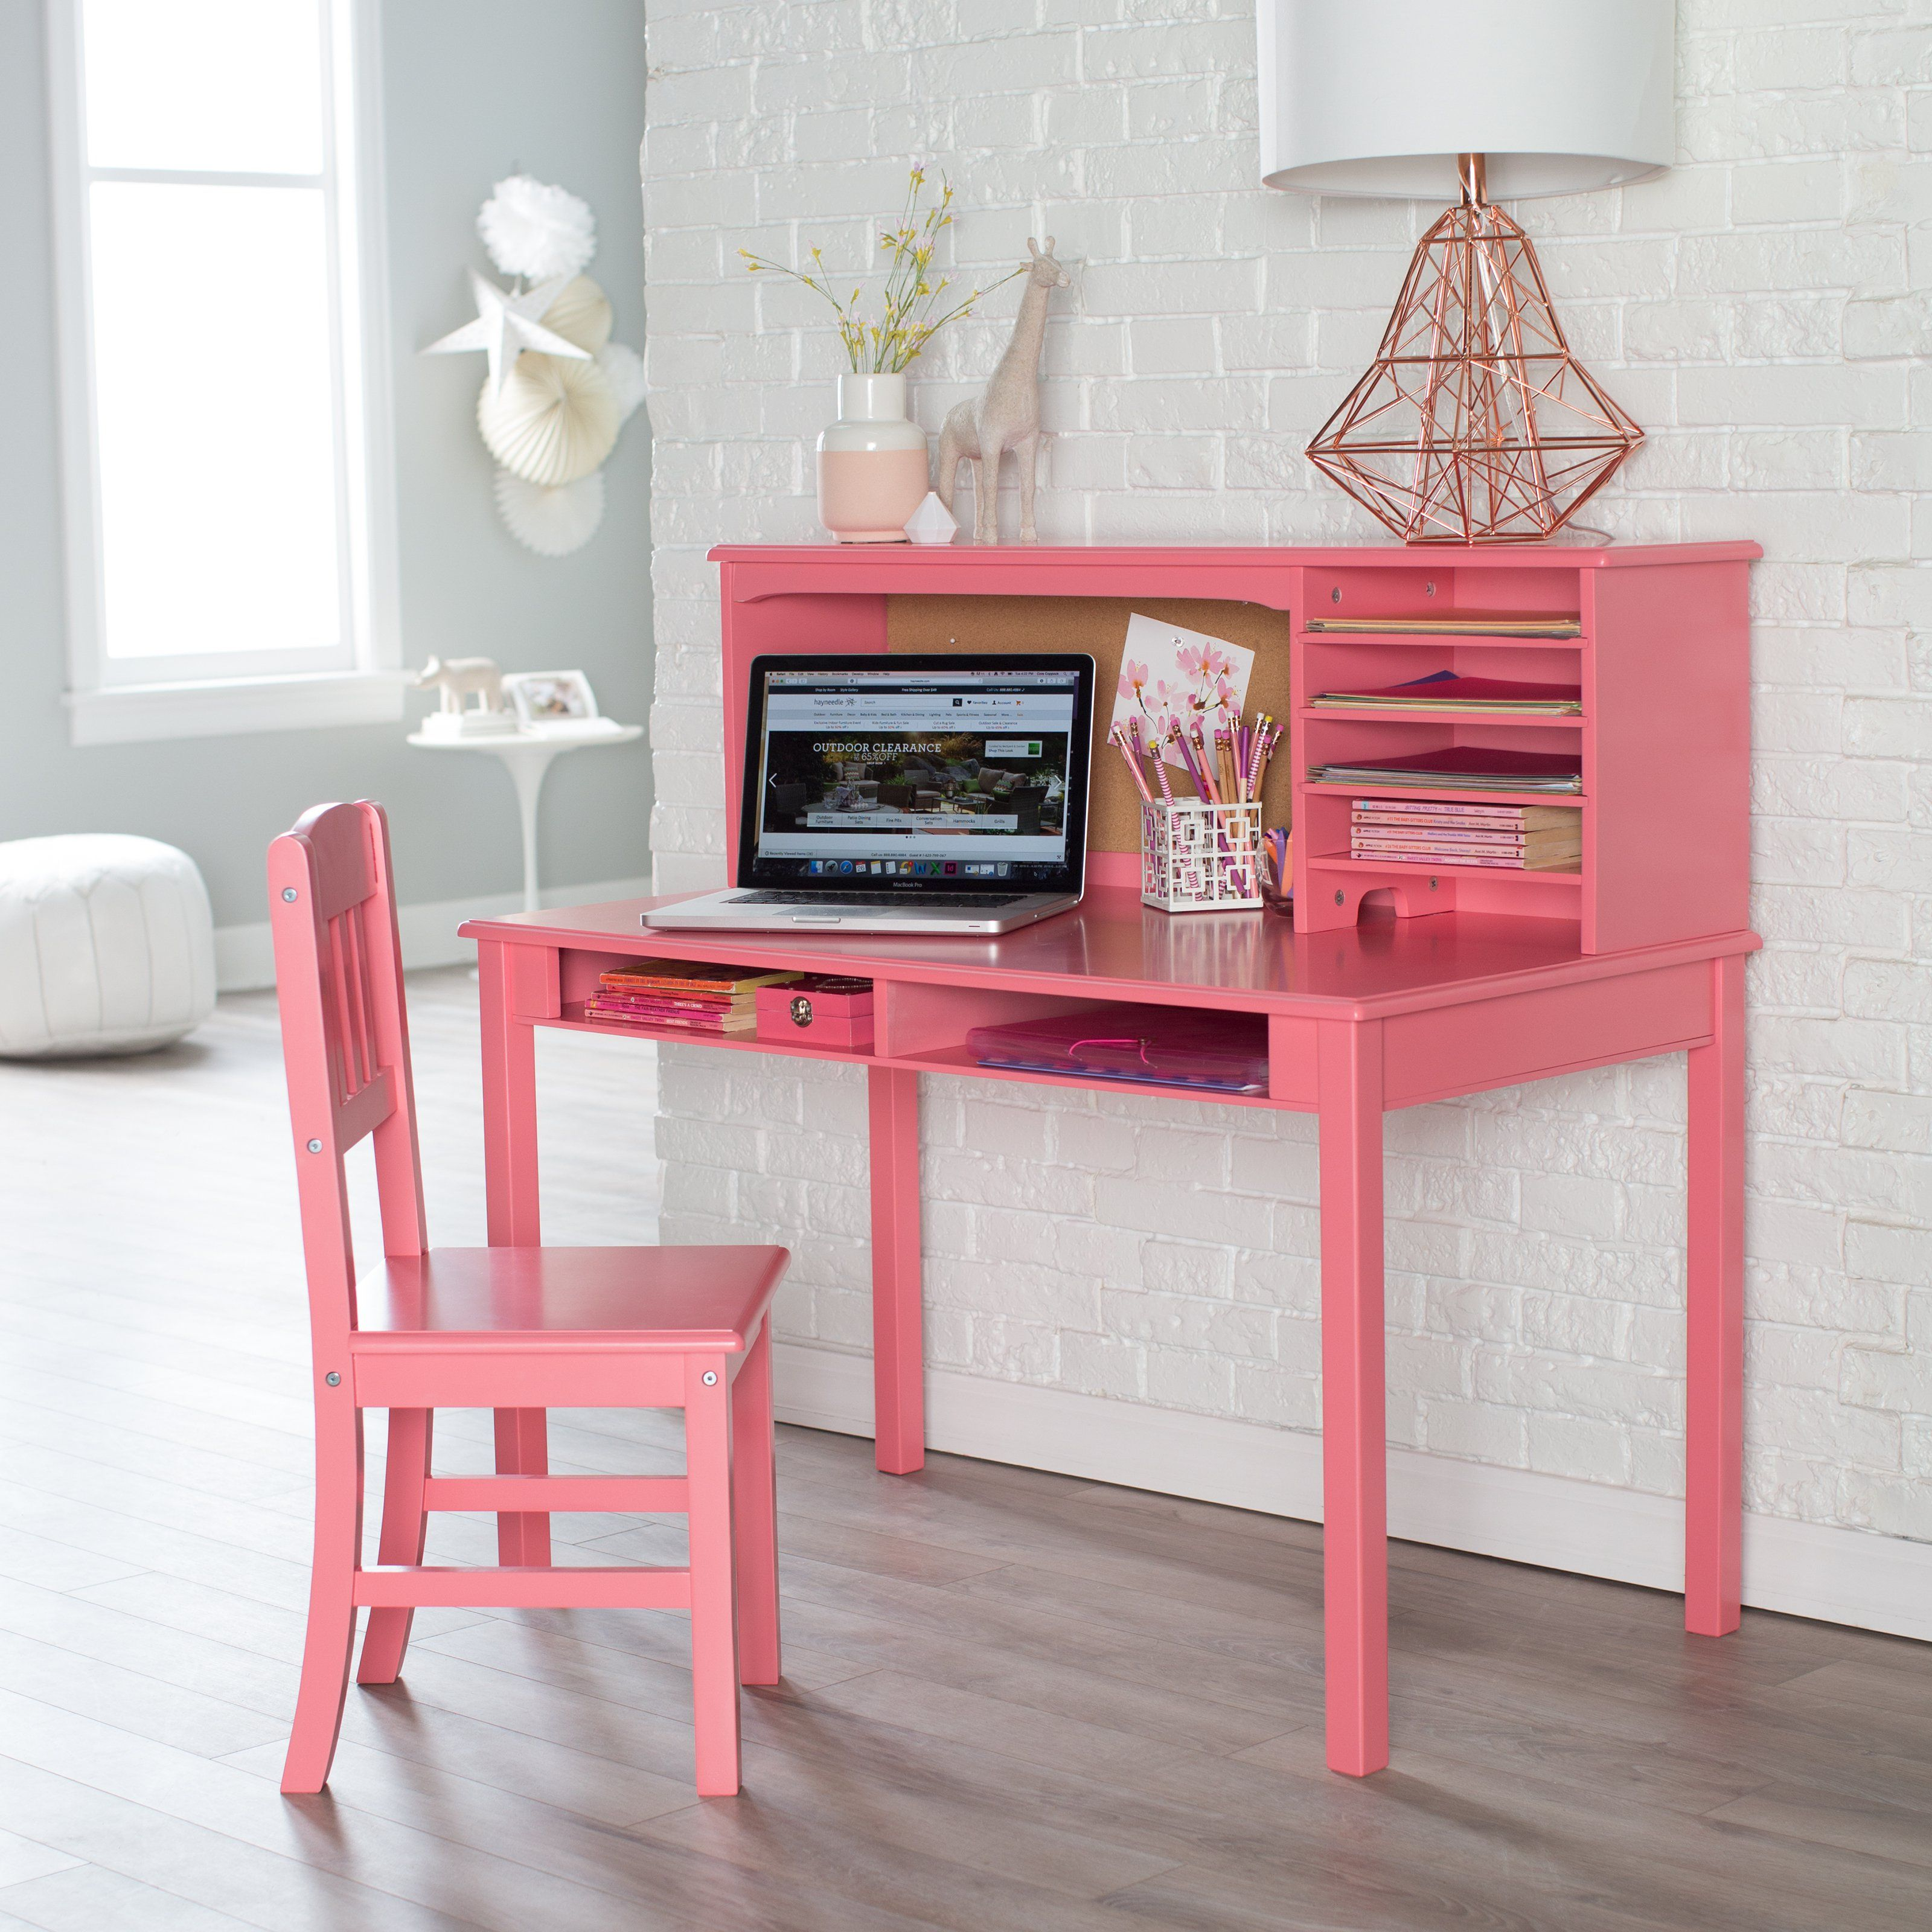 Awesome Guidecraft Media Desk Chair Set Coral Kids Desks At Gmtry Best Dining Table And Chair Ideas Images Gmtryco